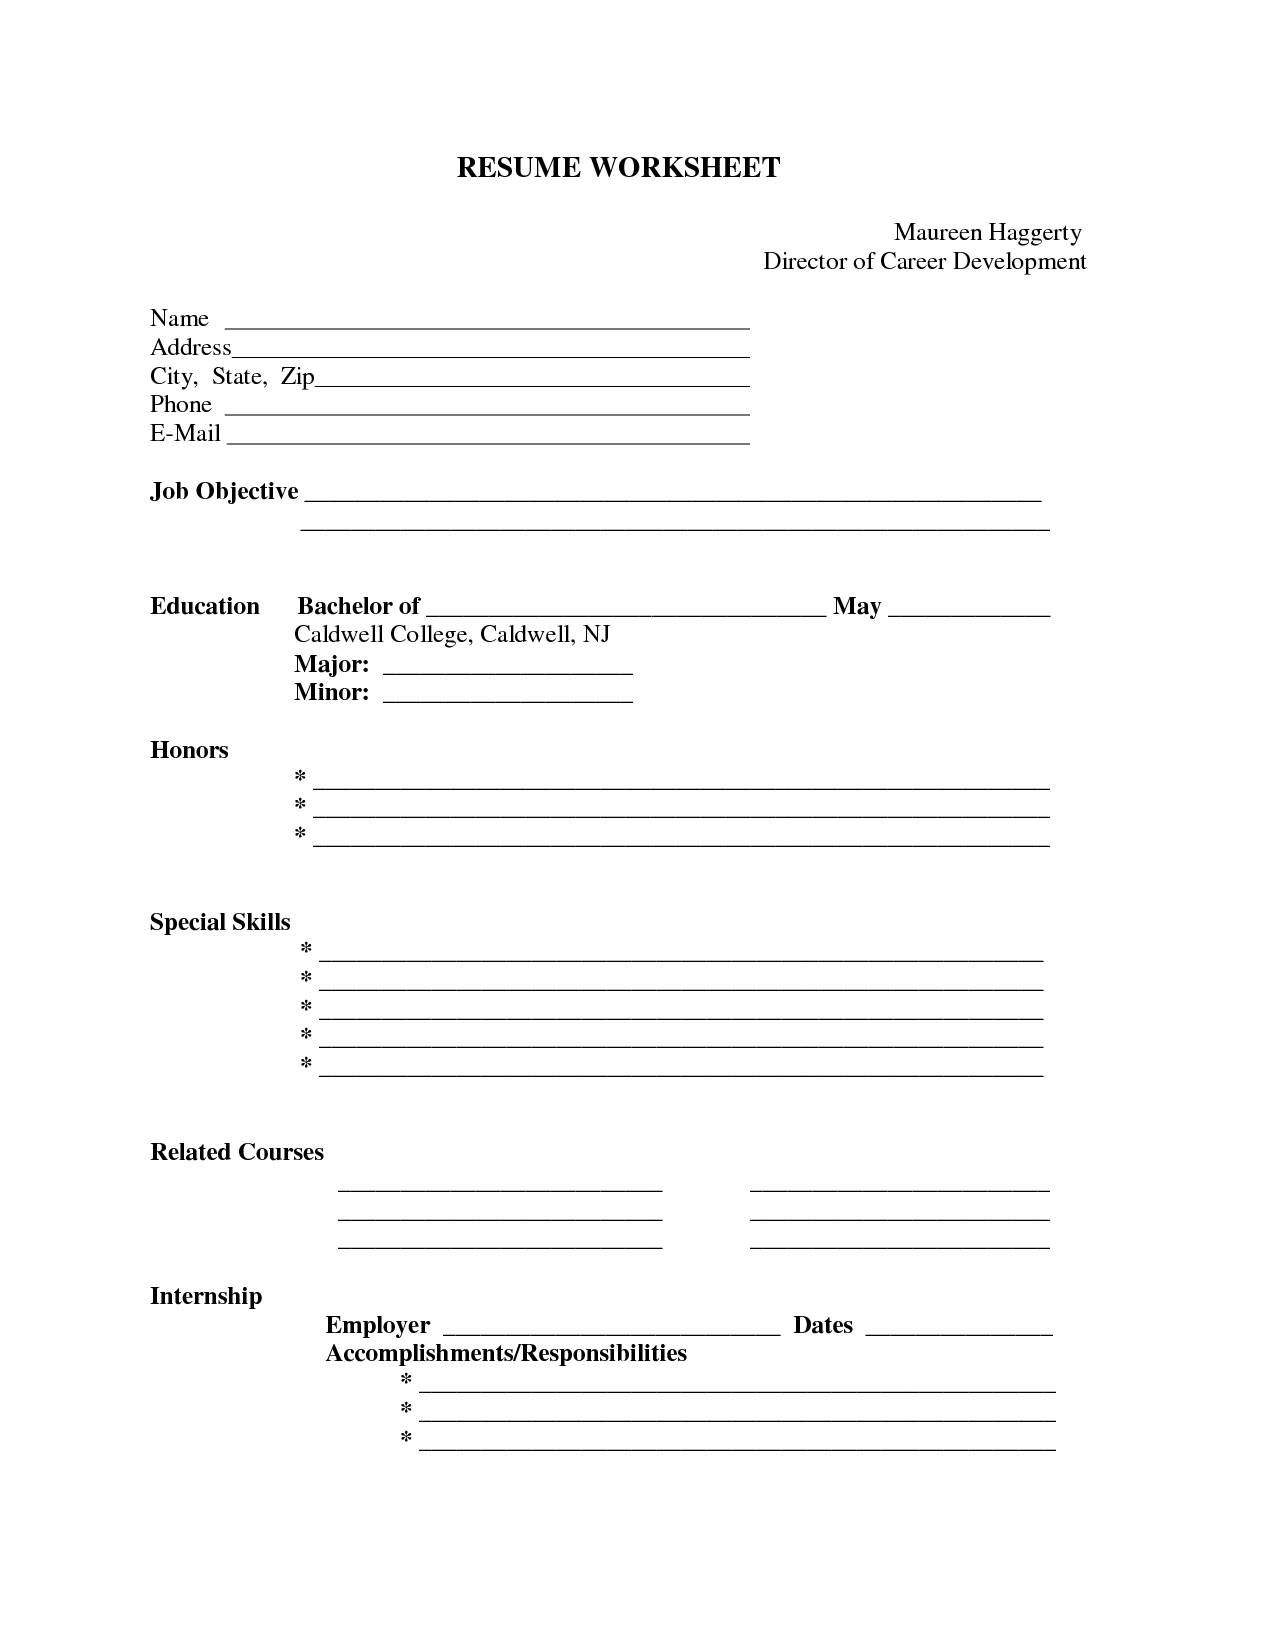 Attractive Free Printable Blank Resume Forms   Http://www.resumecareer.info/ Idea Free Printable Resume Maker